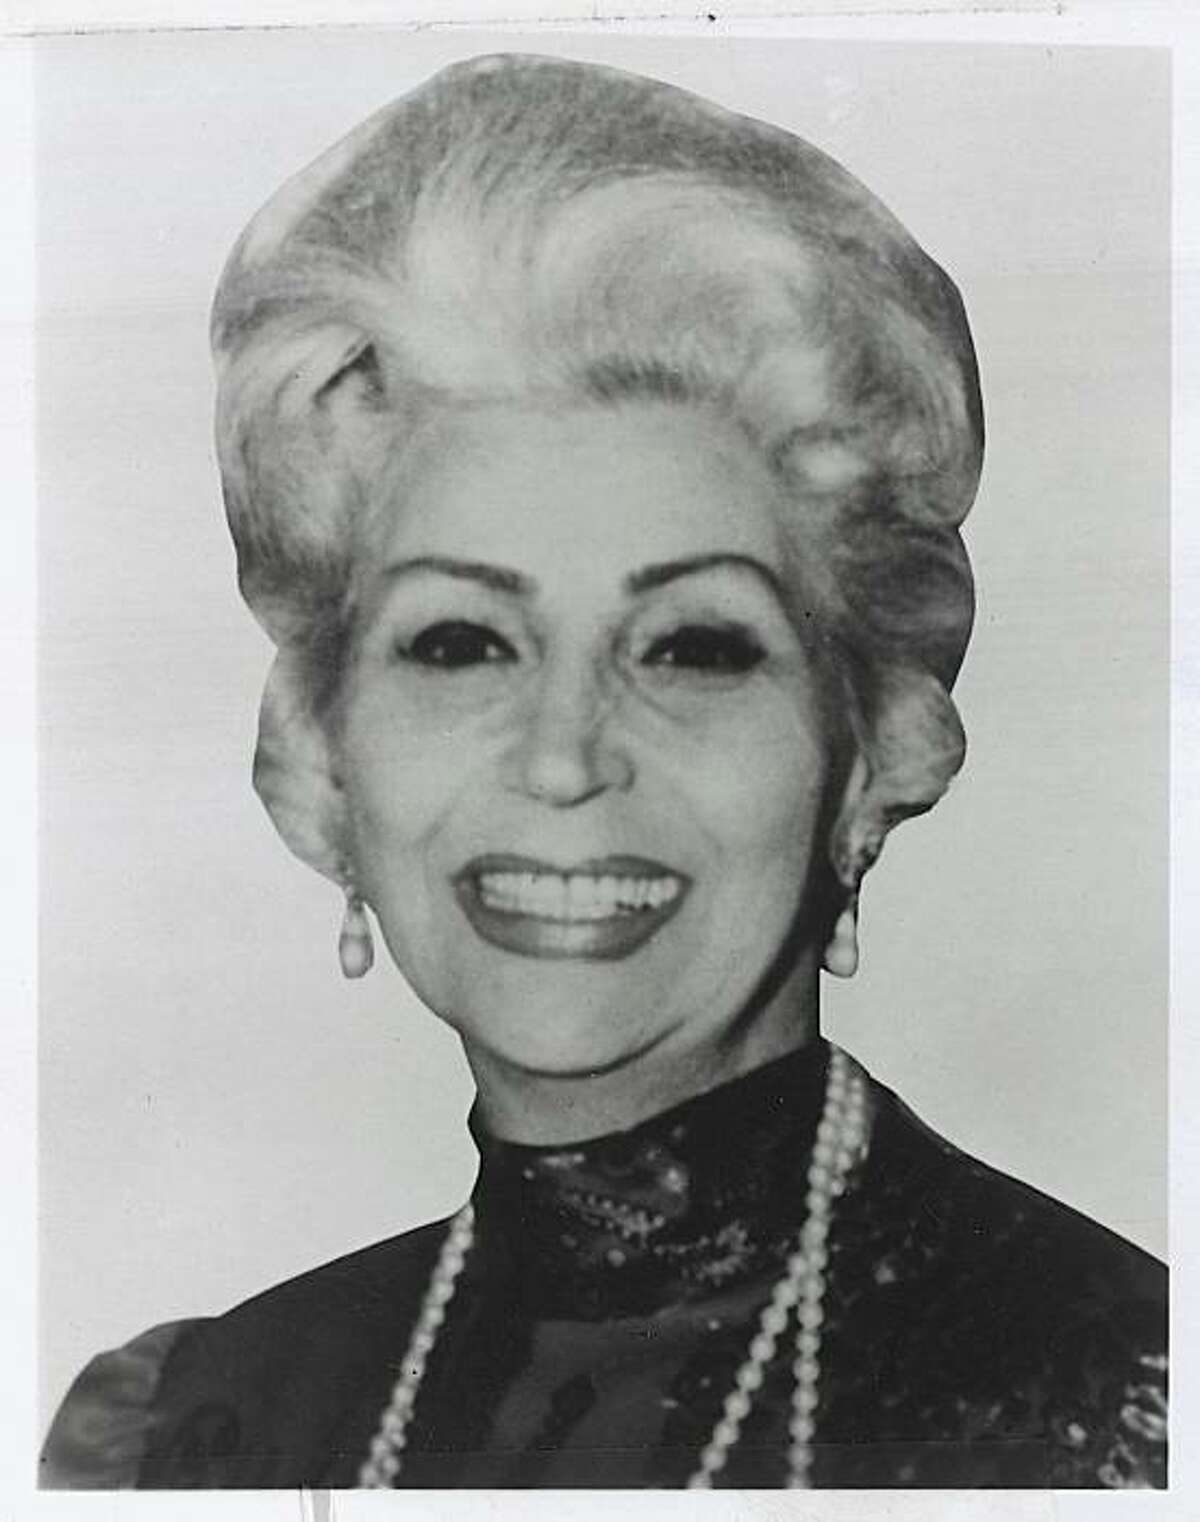 Angelina Alioto, former wife of ex-SF Mayor Joseph Alioto, died Thursday at her home with her family at her side. She was 94.